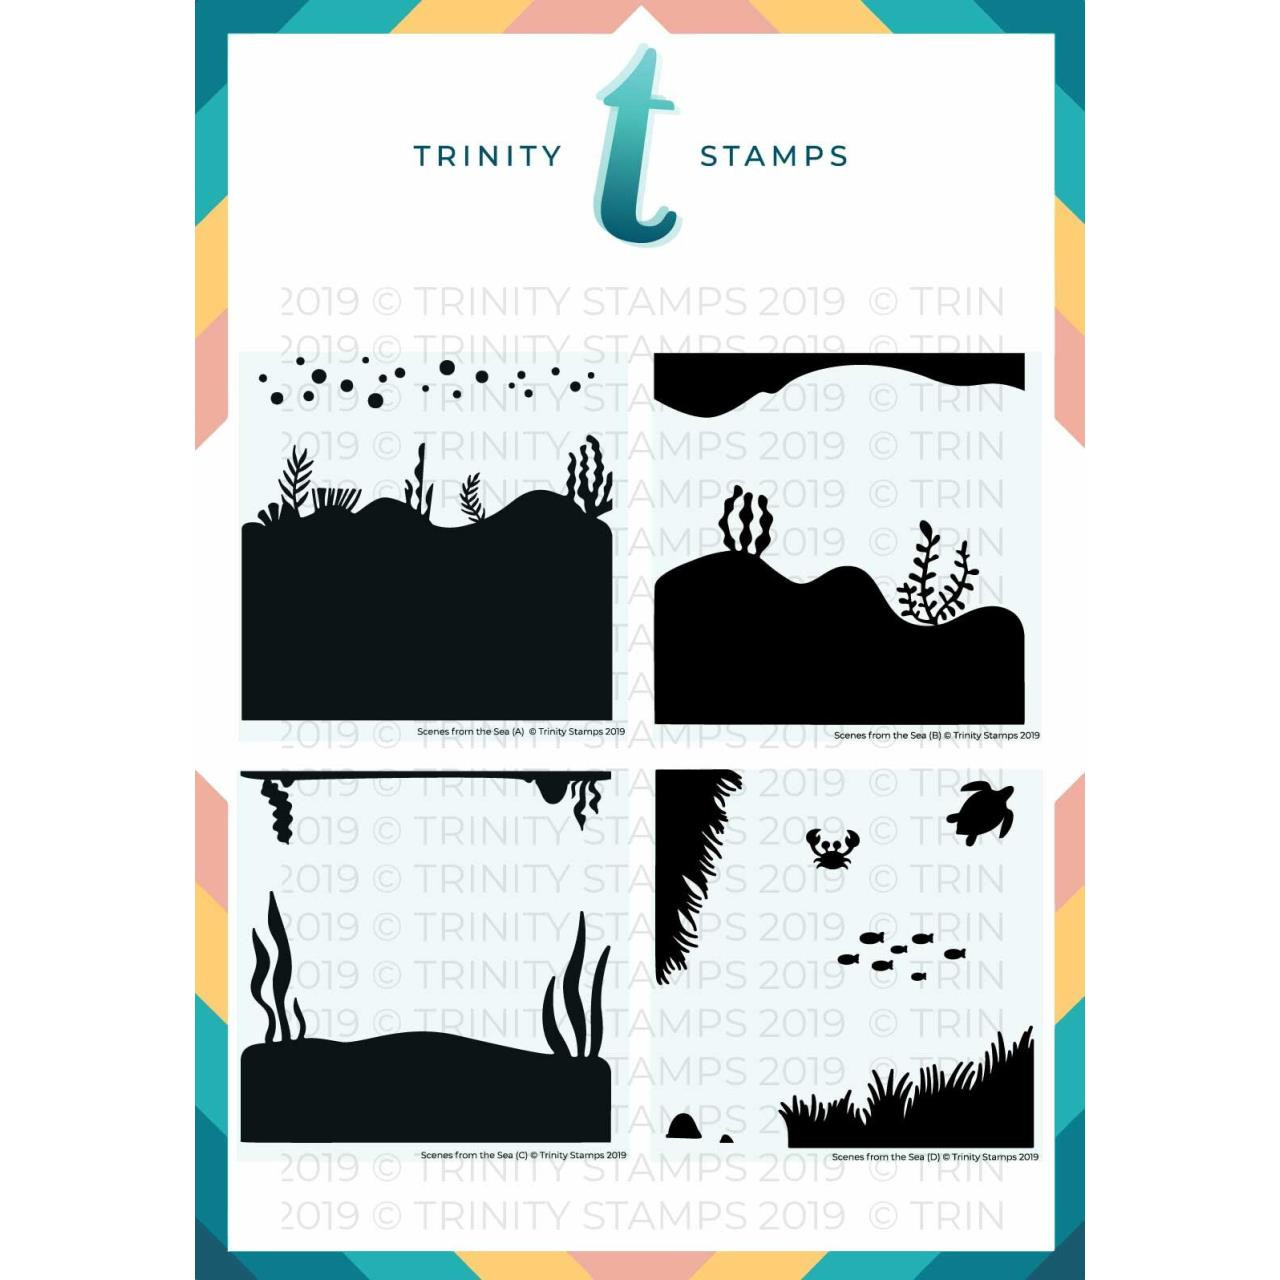 Scenes from the Sea, Trinity Stamps Stencils -